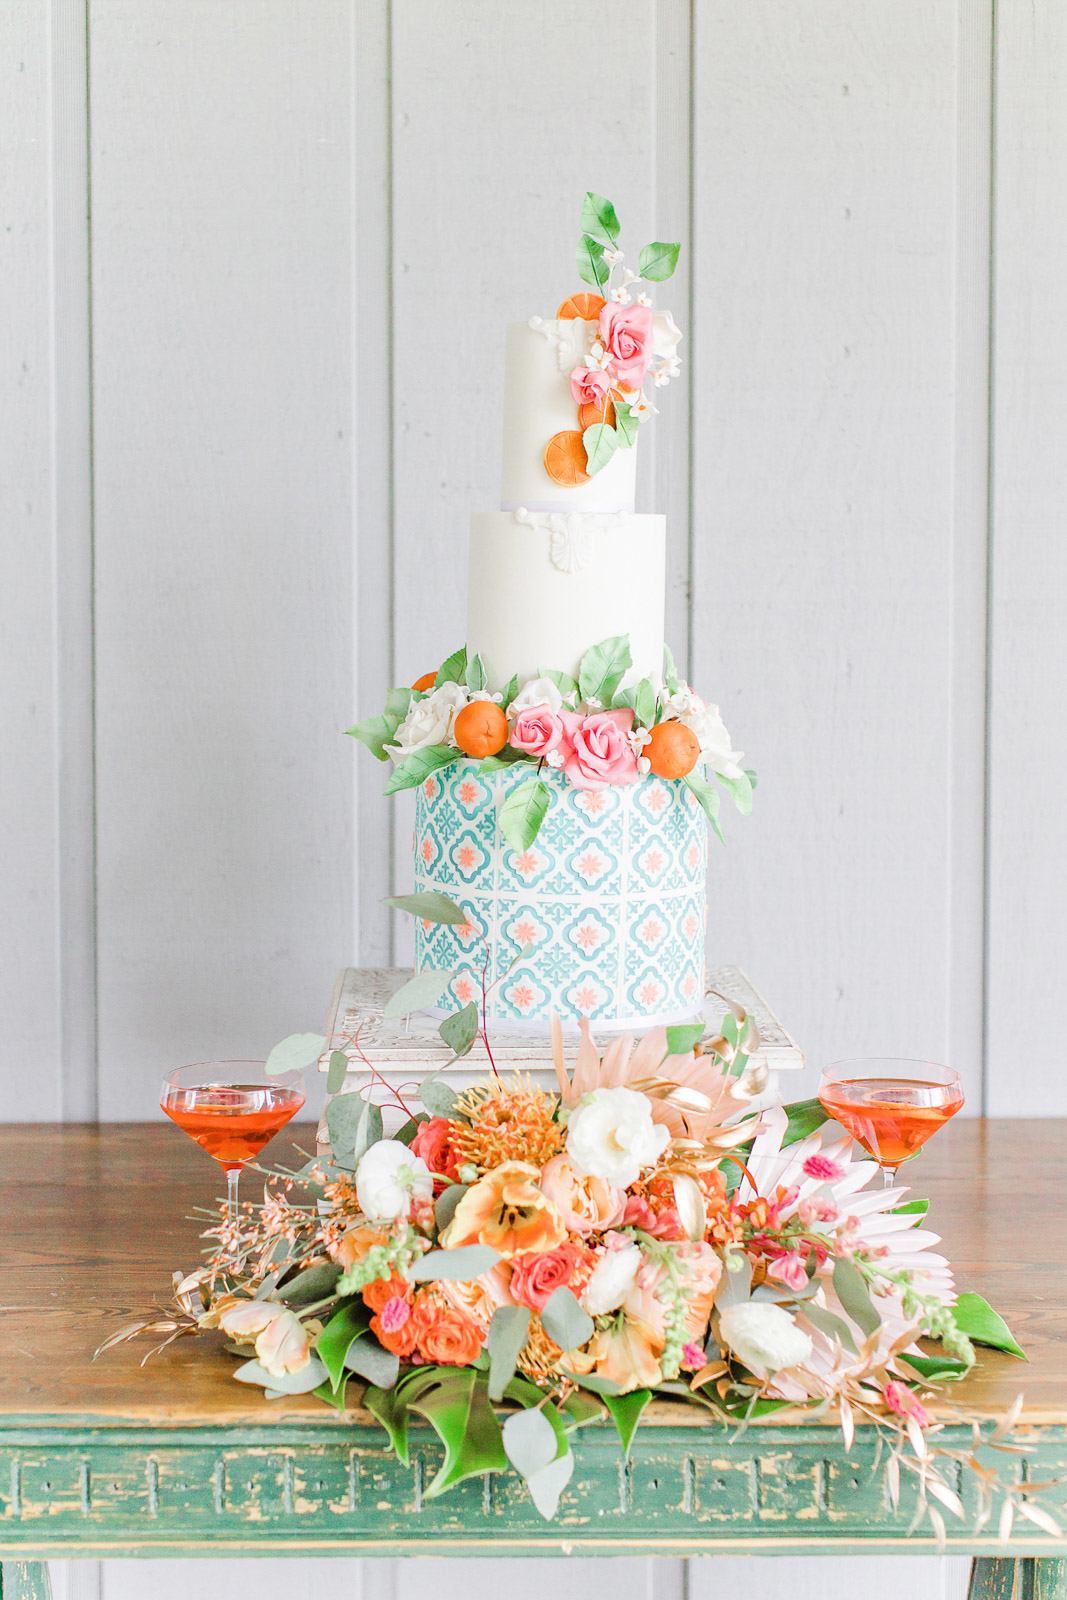 Old Florida inspired wedding cake with citrus and tile details